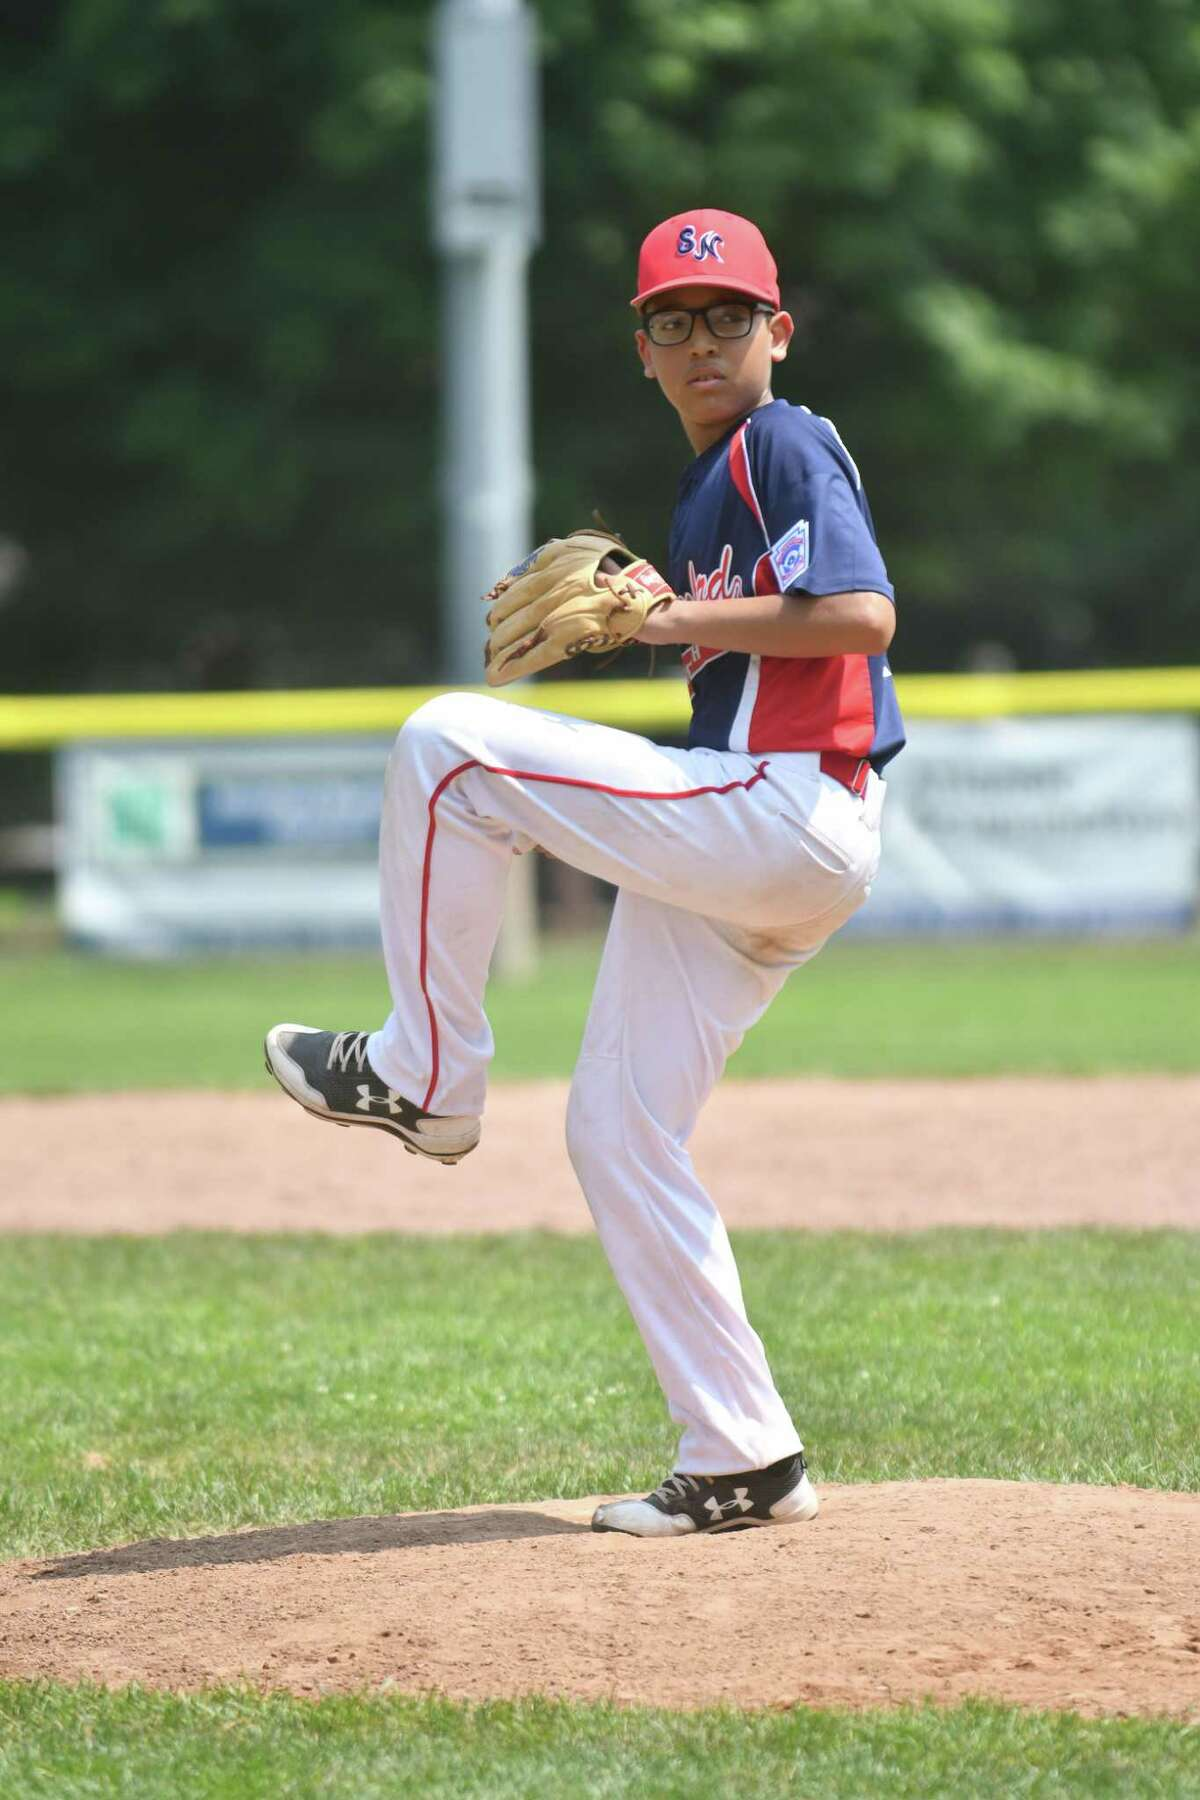 Joe Colon (21) of Stamford North delivers a pitch during a District 1 Little League game against Weston on Wednesday July 4, 2018, at Michael J. Drotar Park in Stamford, Connecticut.